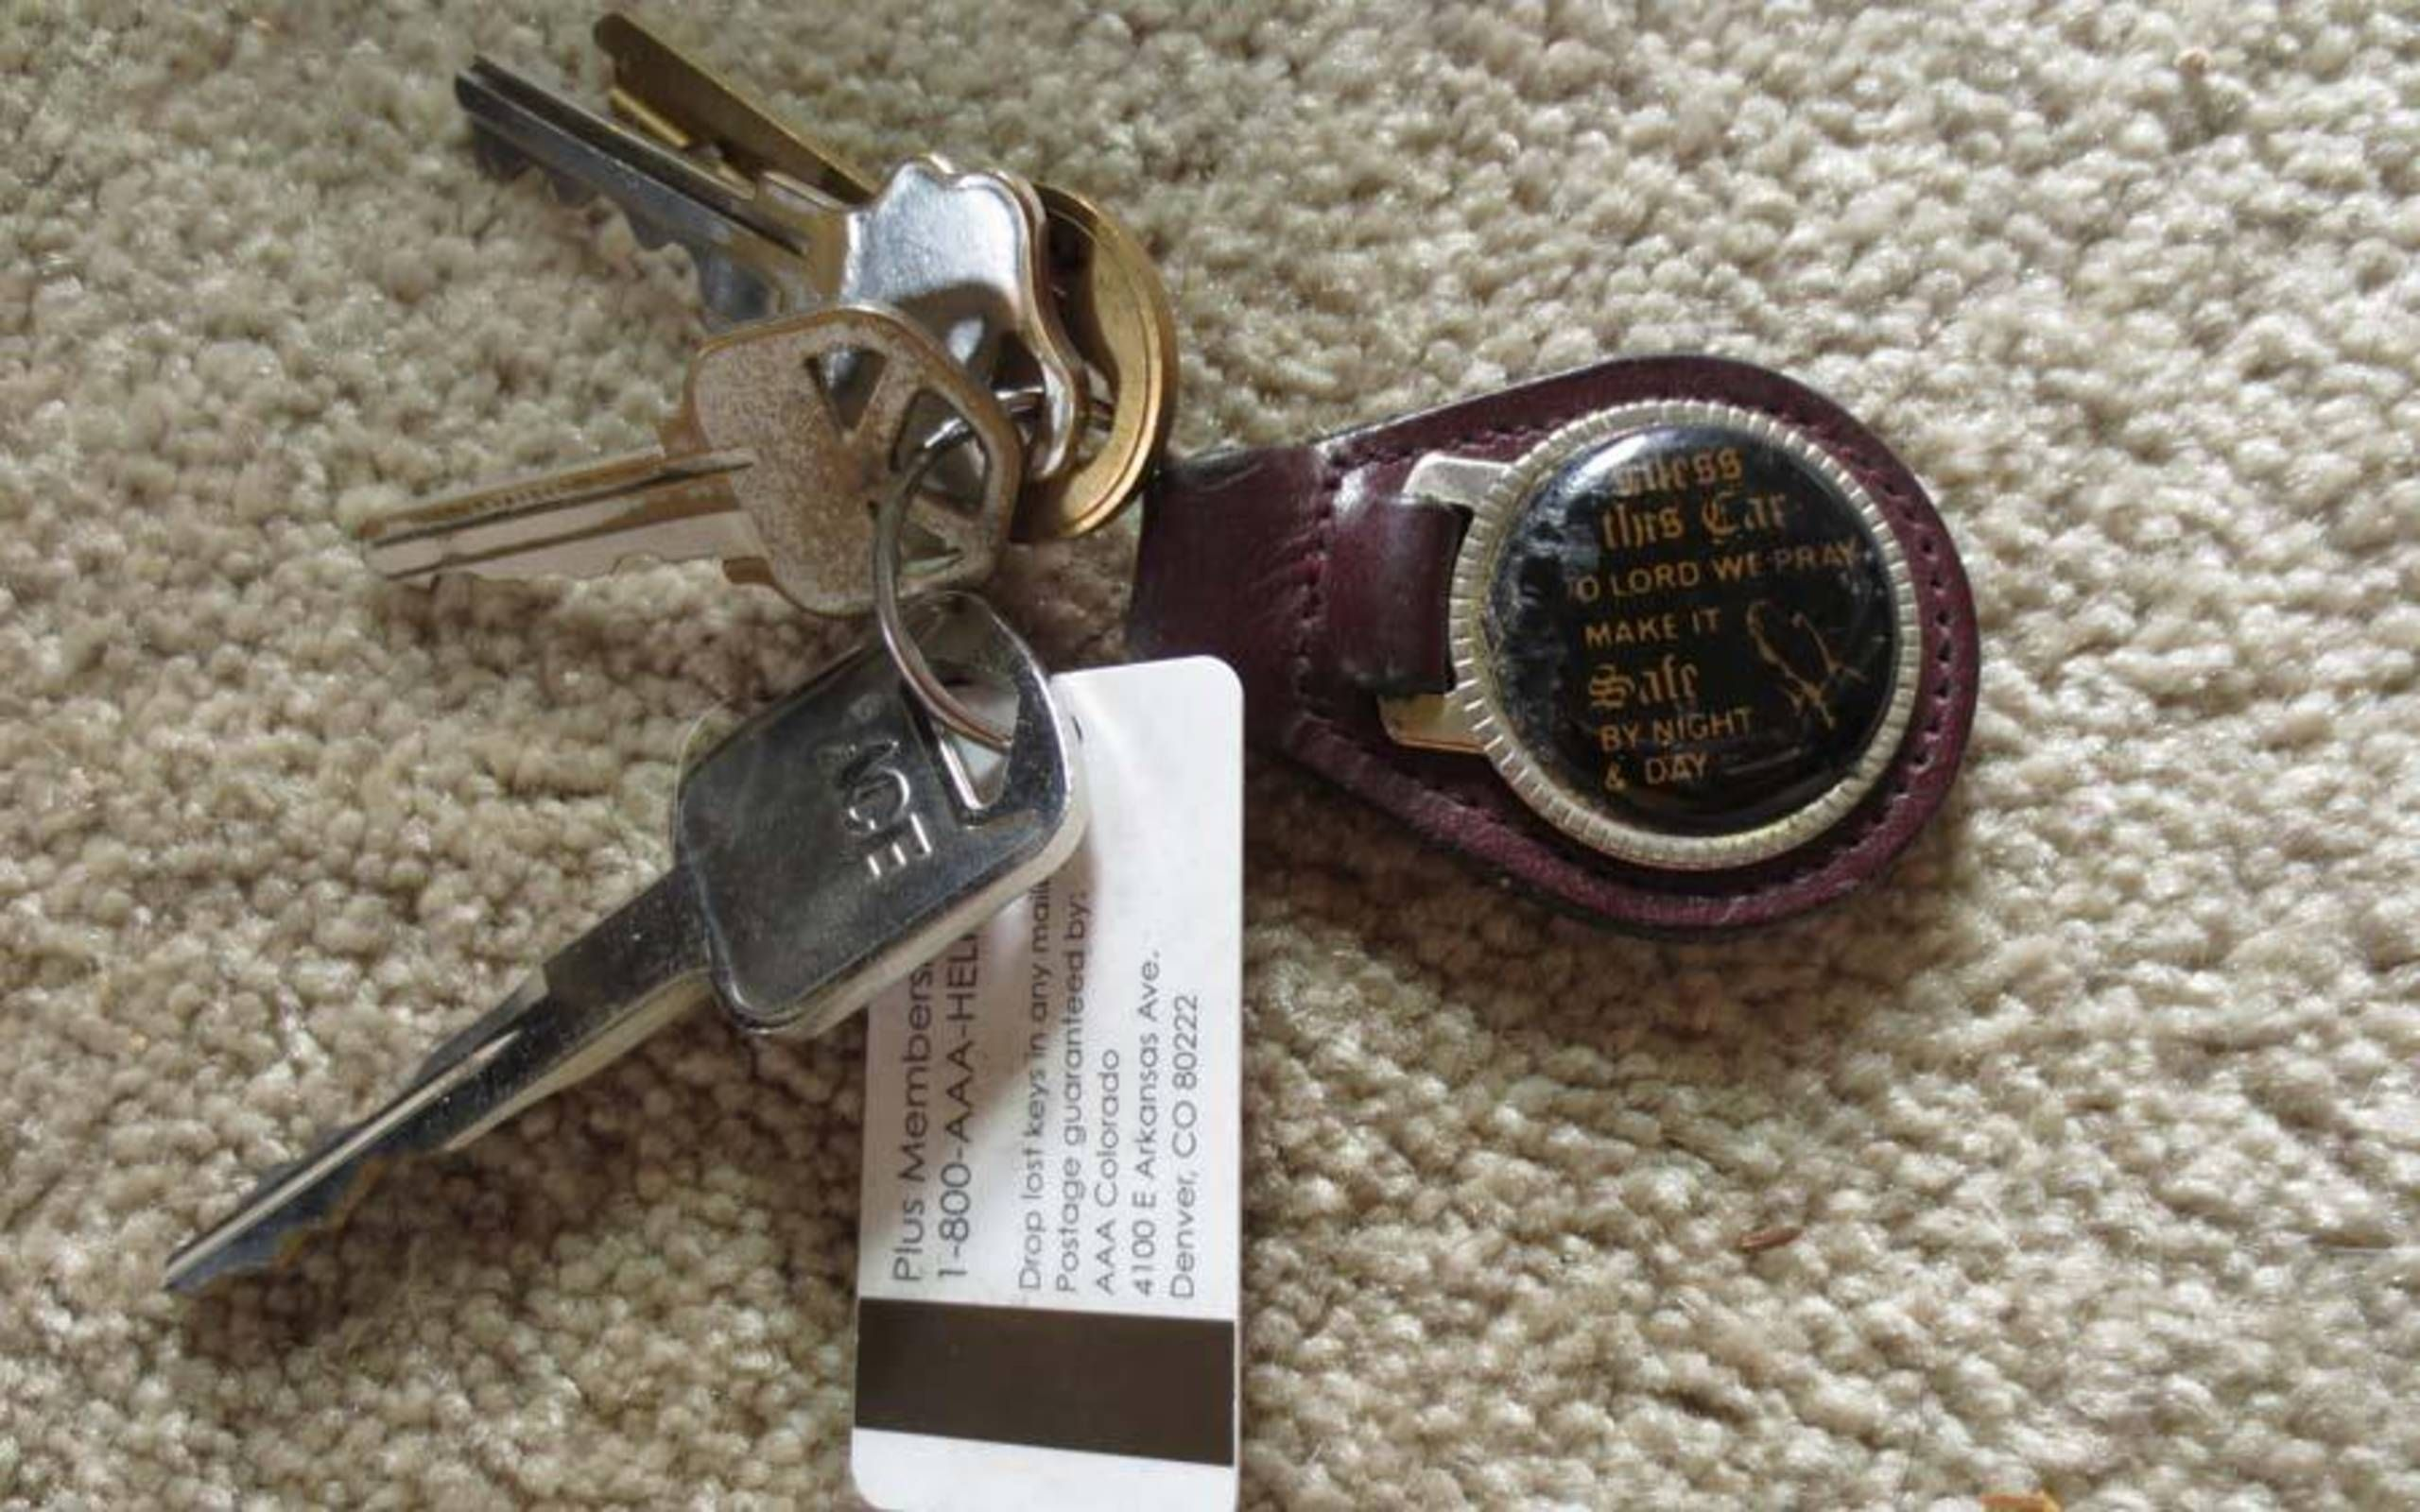 Do Those Aaa Key Return Tags Really Work We Find Out